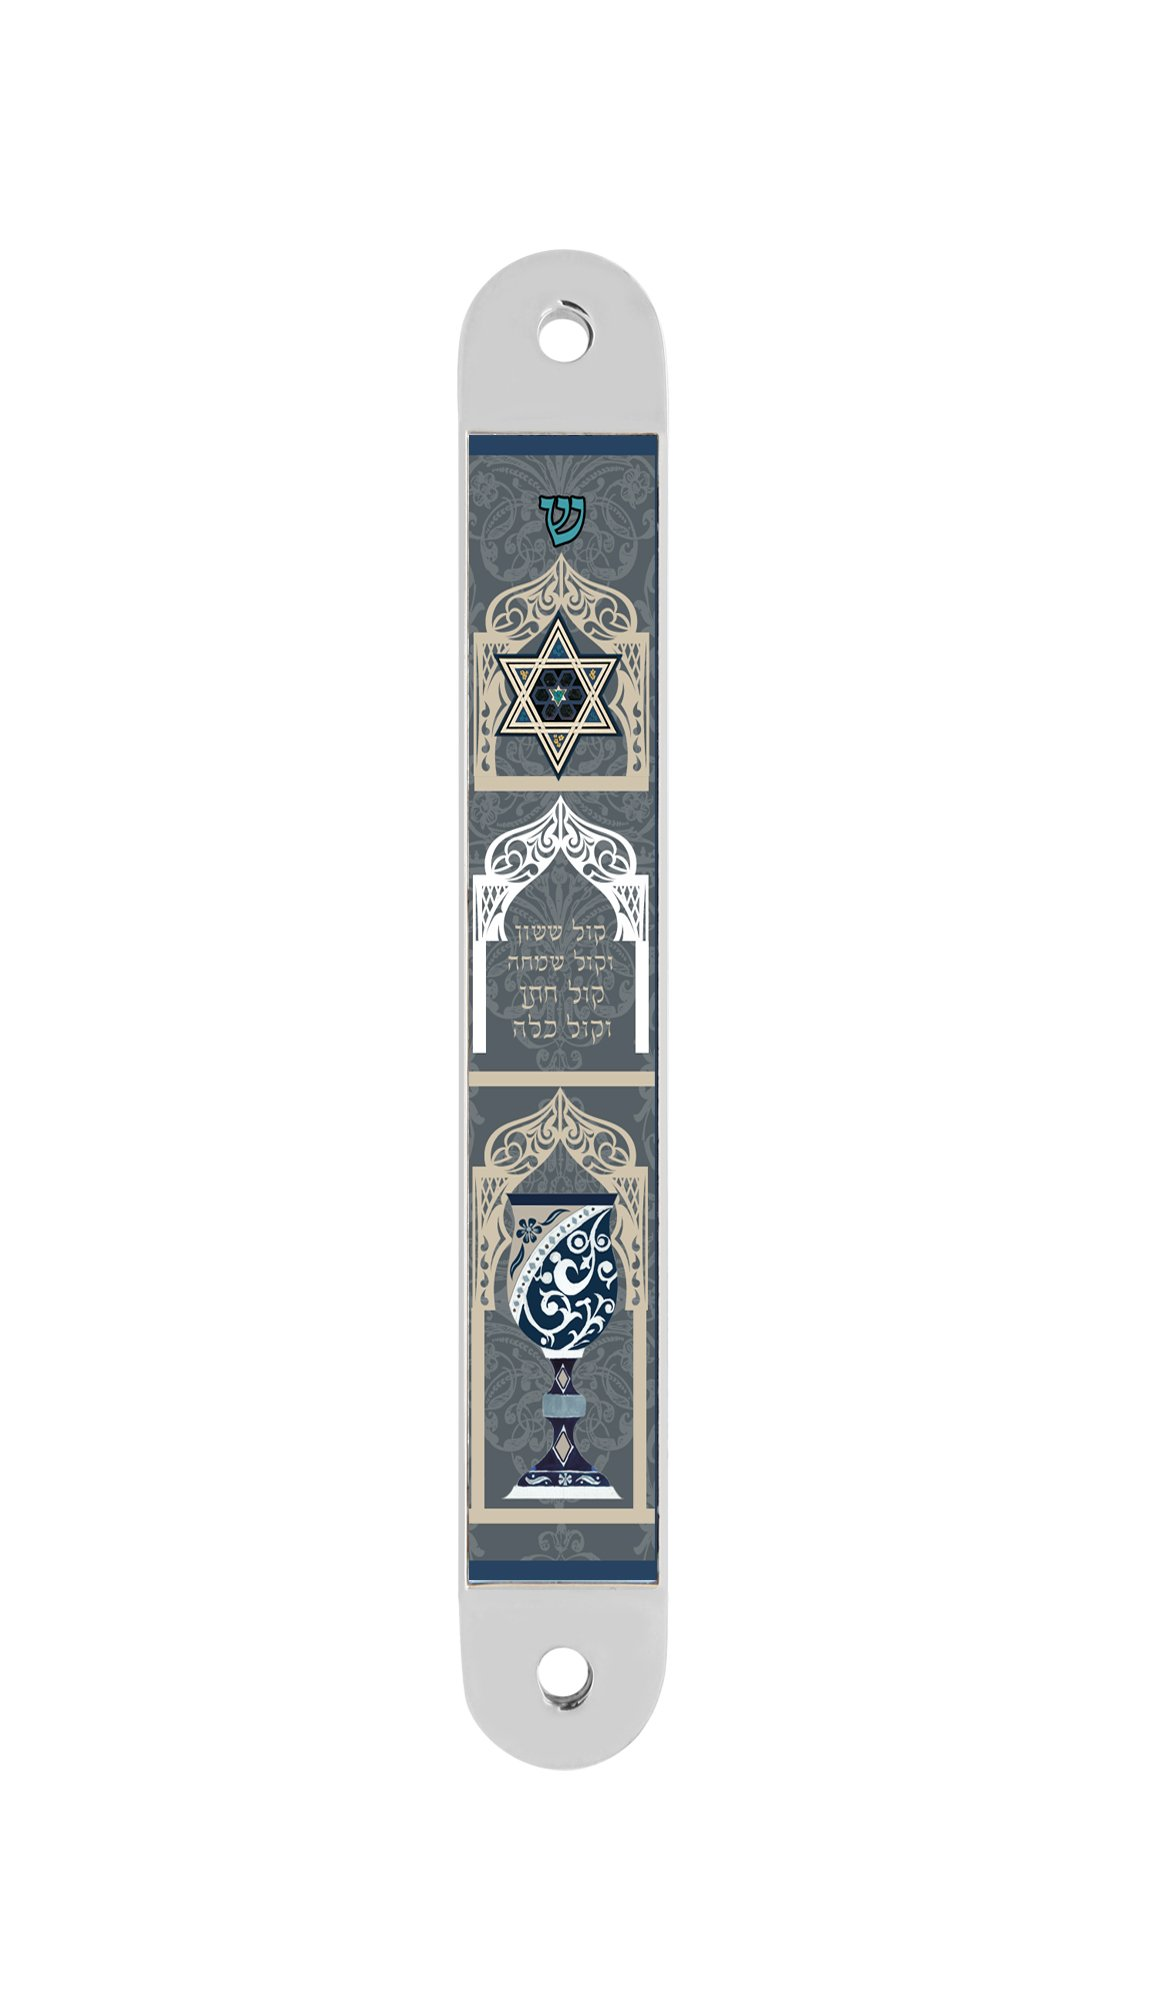 GMZ 138 Floral Kiddush Cup Mezuzah- Perfect Jewish Wedding Gift- Can Accommodate 10 cm Scroll- Gift Box Included- Designed in Israel